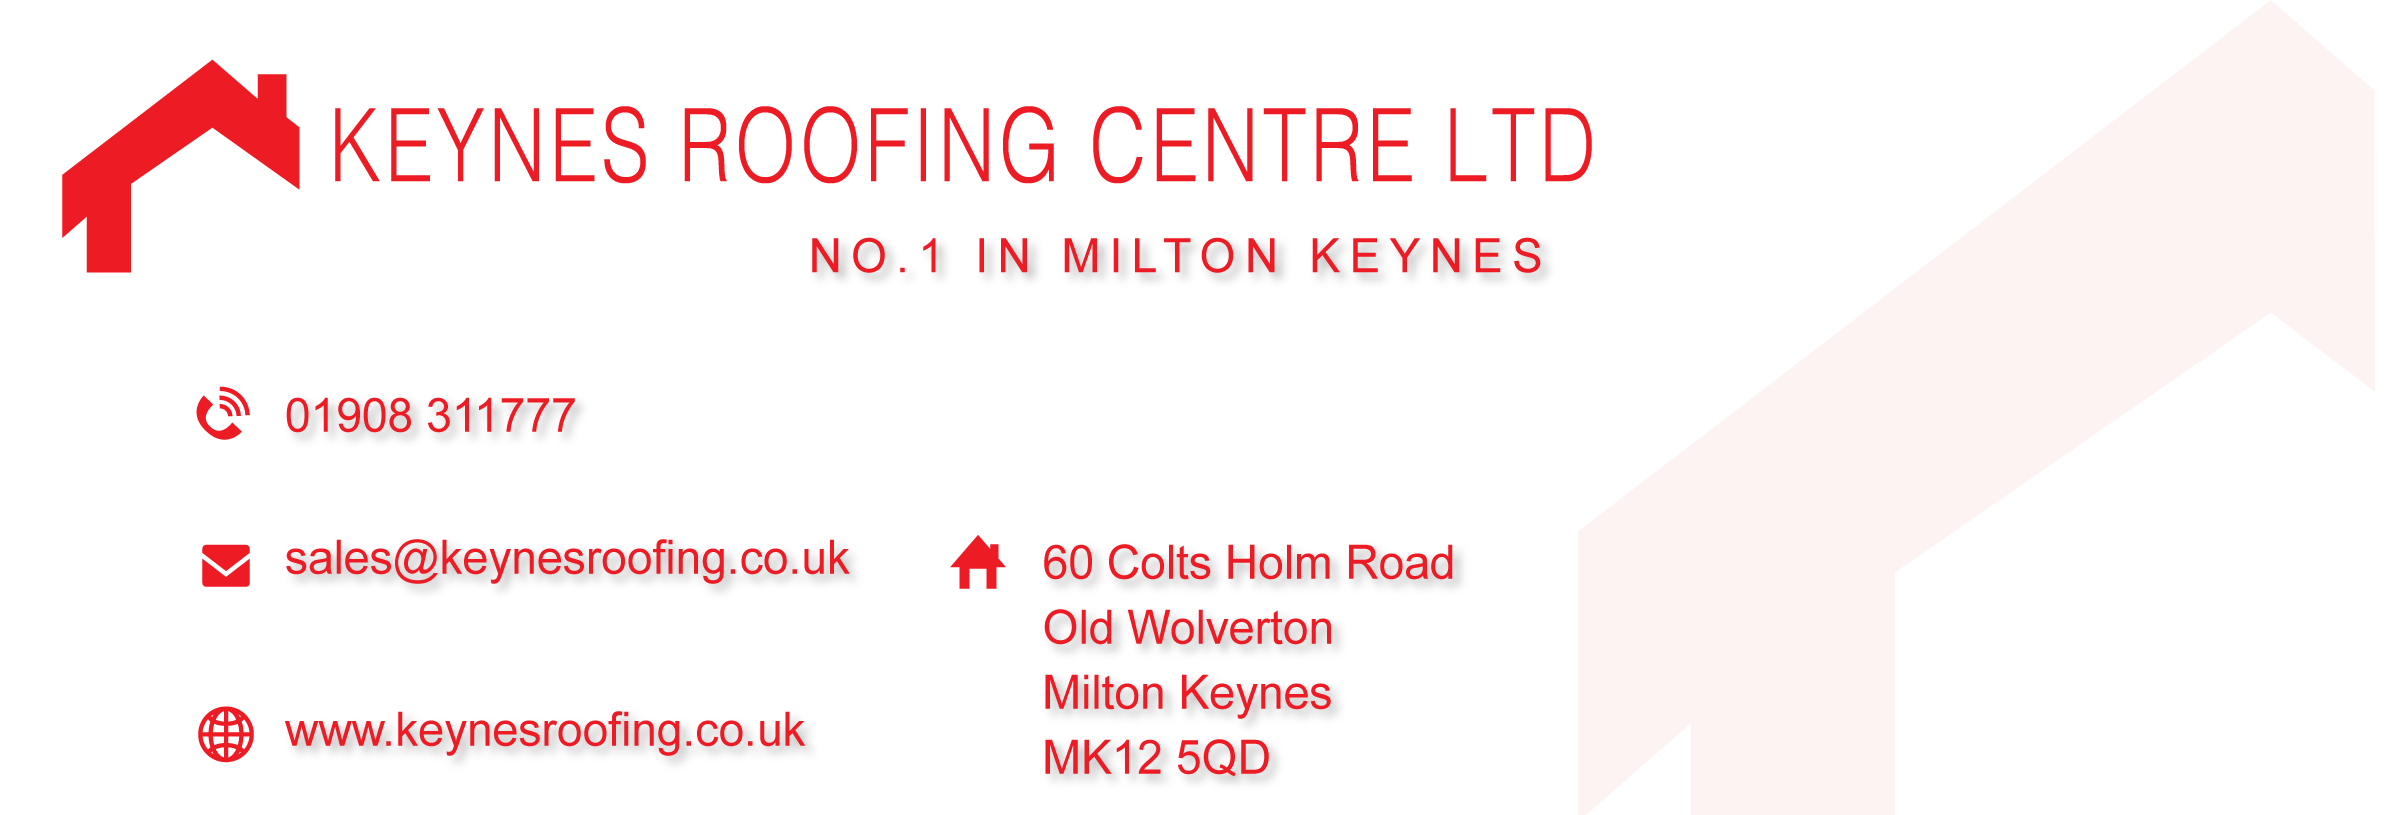 Keynes Roofing Centre Ltd